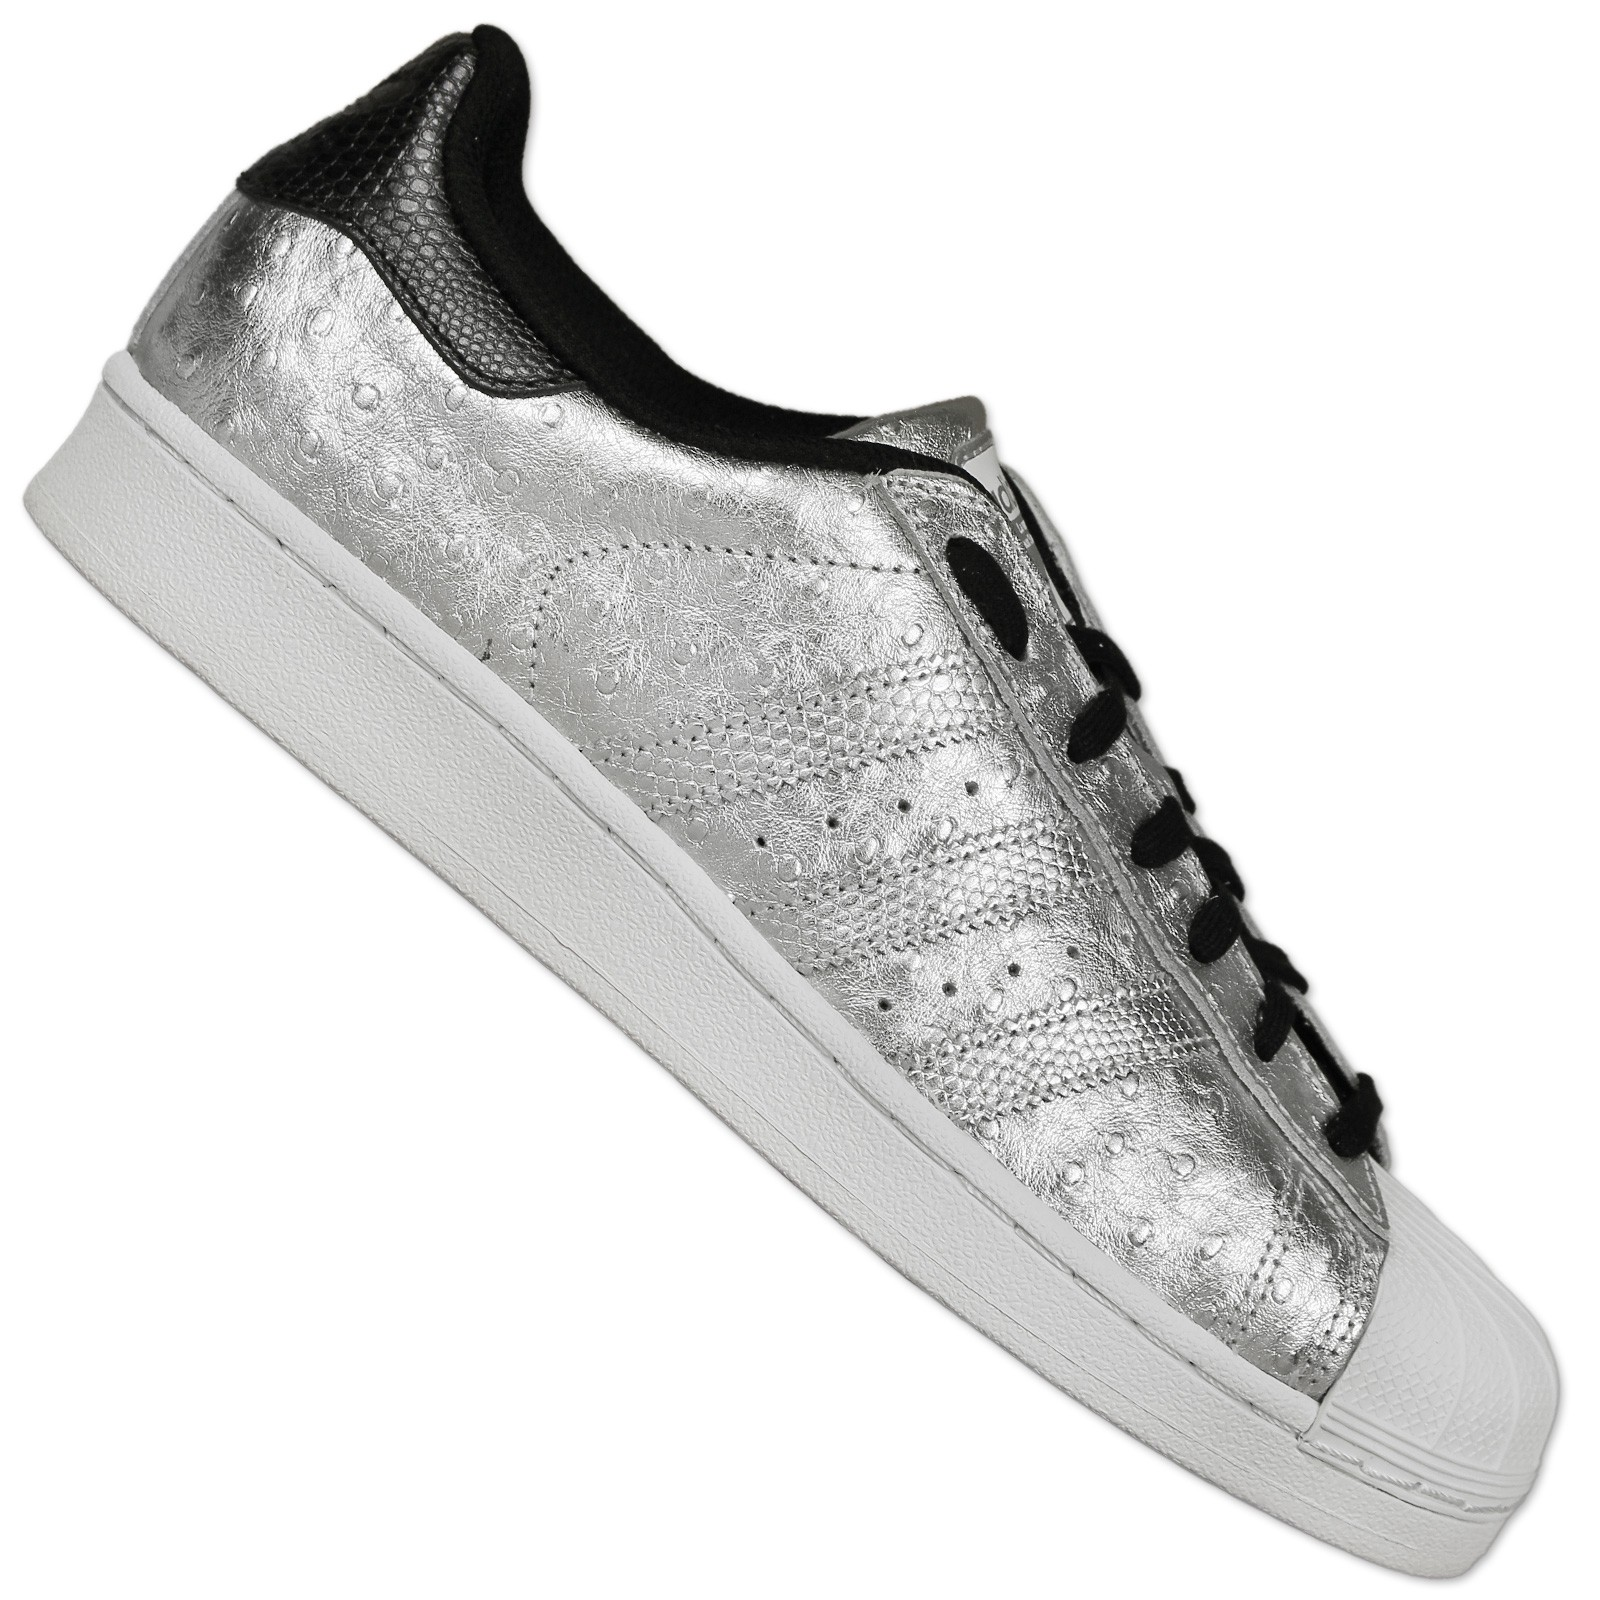 Details about Adidas Originals Superstar Trainers II Shoes Ostriches Leather Silver Metallic